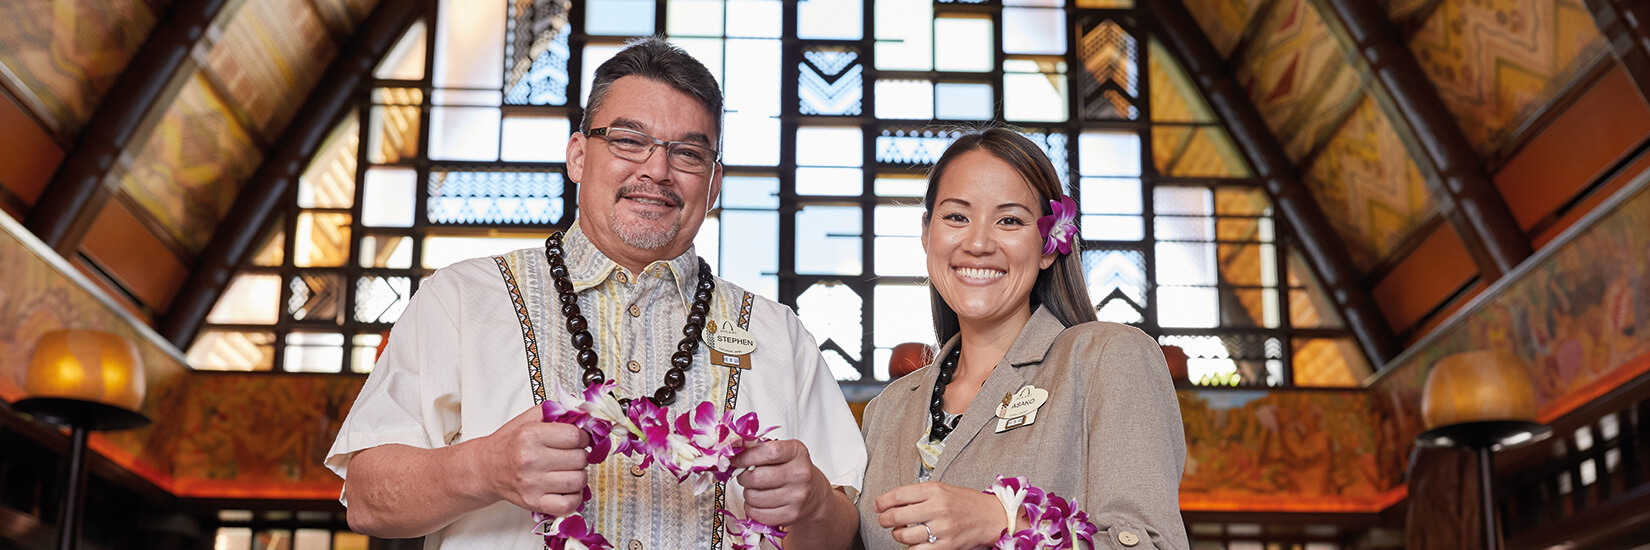 Man and woman smiling and holding leis